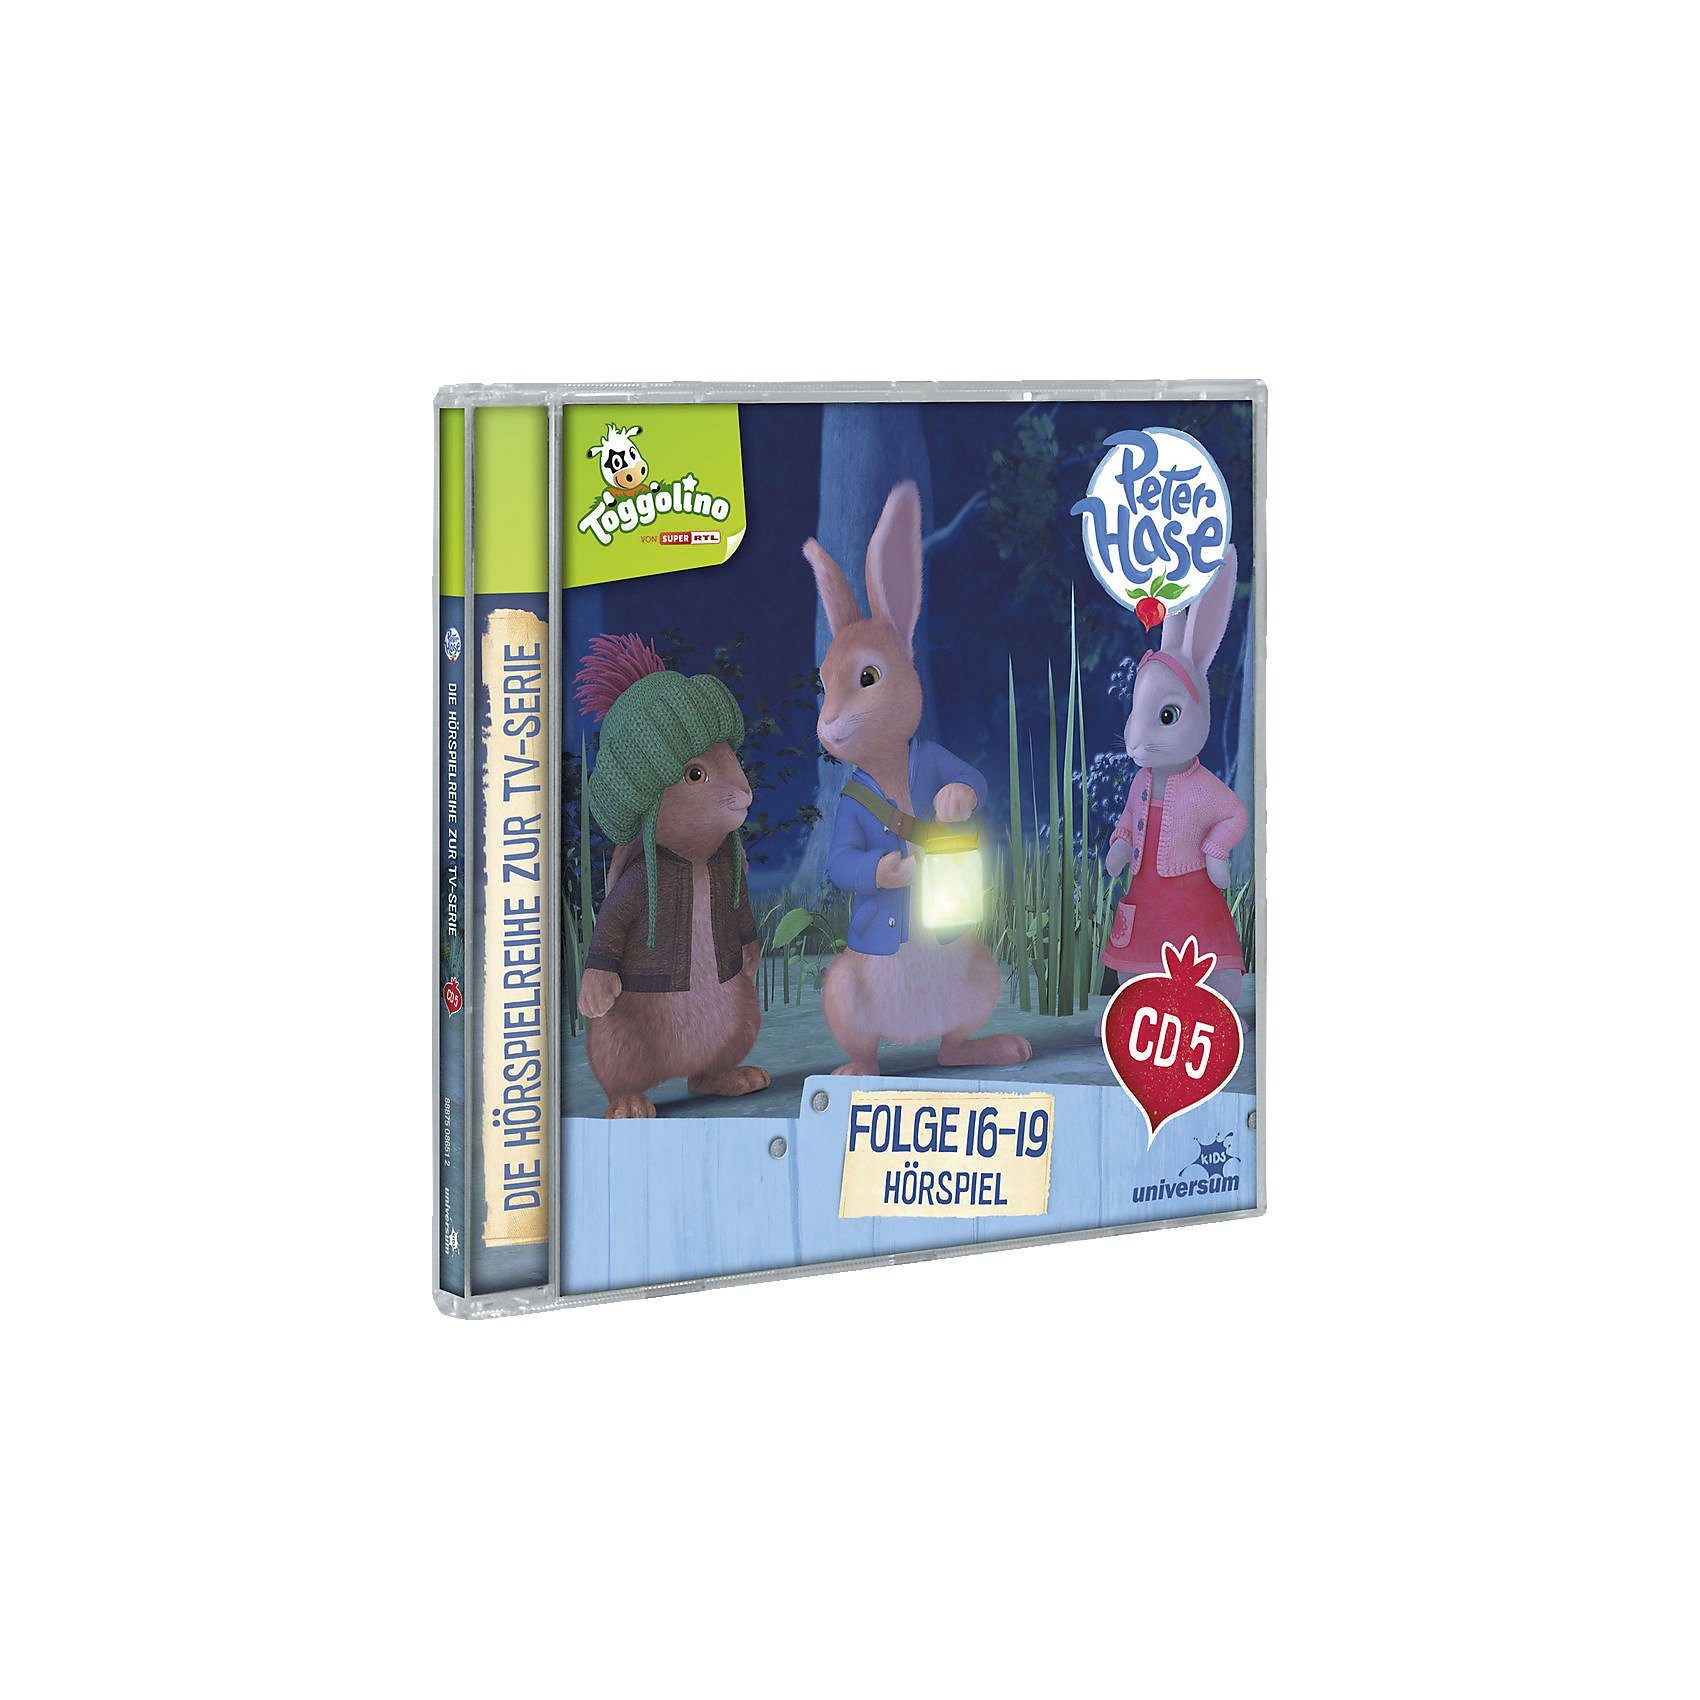 Universum CD Peter Hase 05